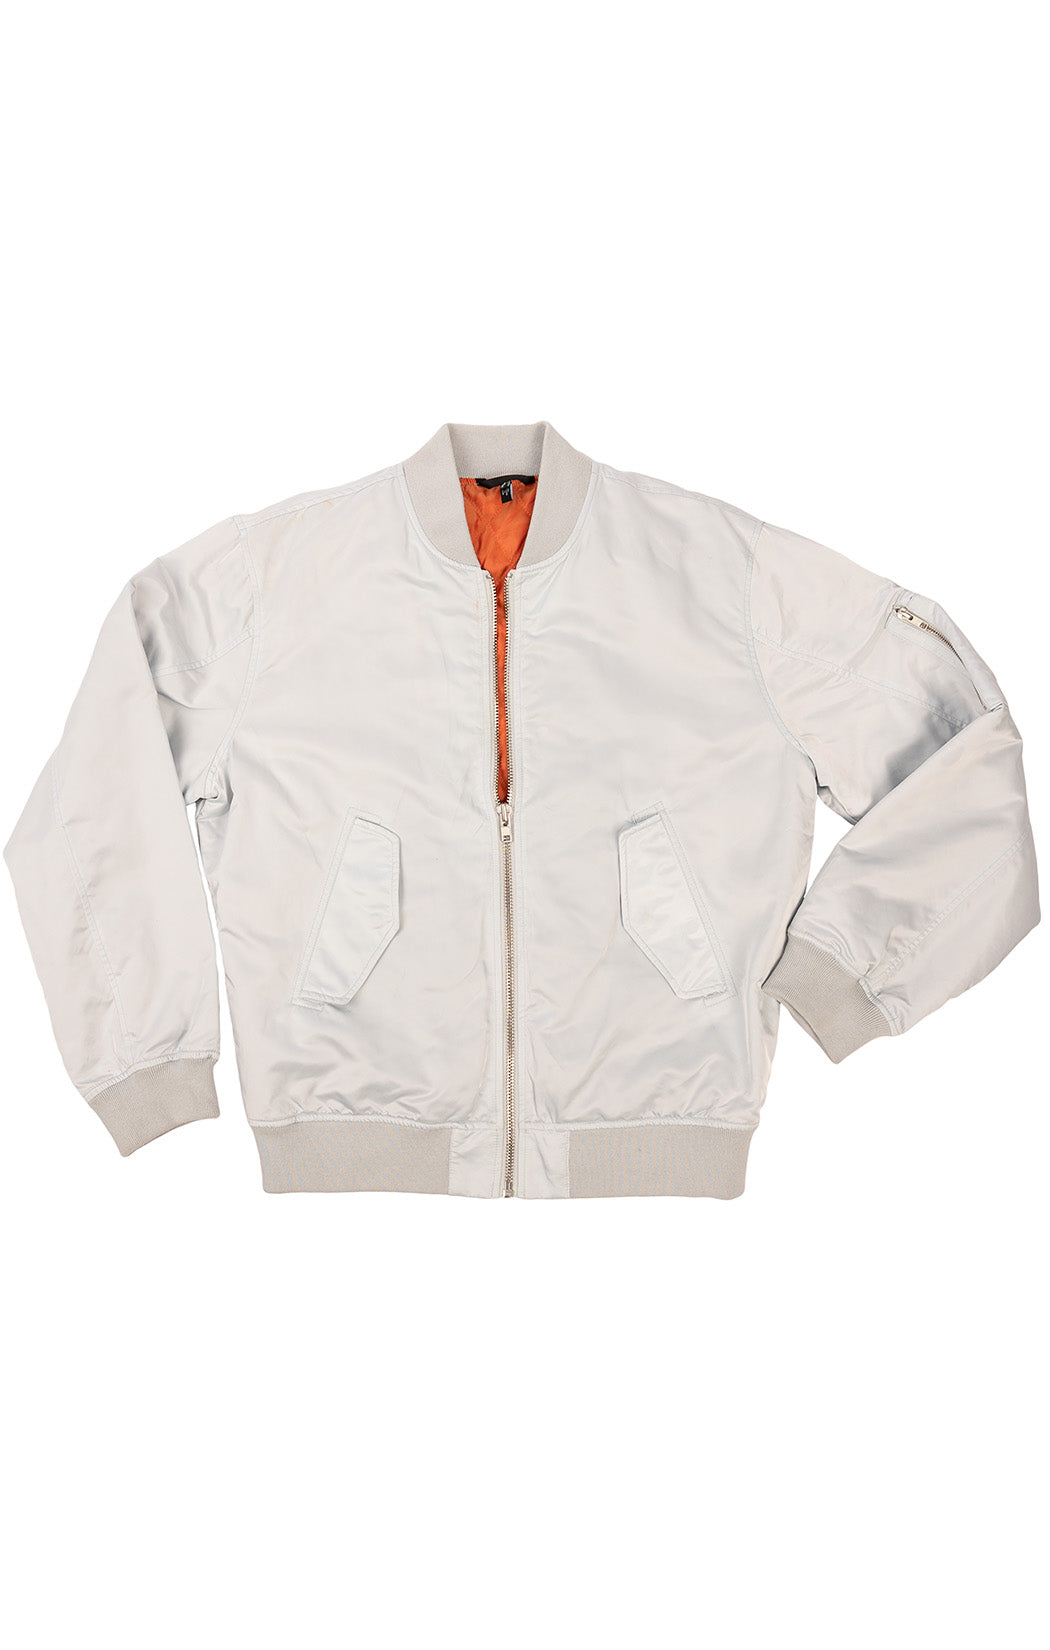 Light blue gray bomber style jacket with zipper front, front flap pockets and one side zipper on sleeve